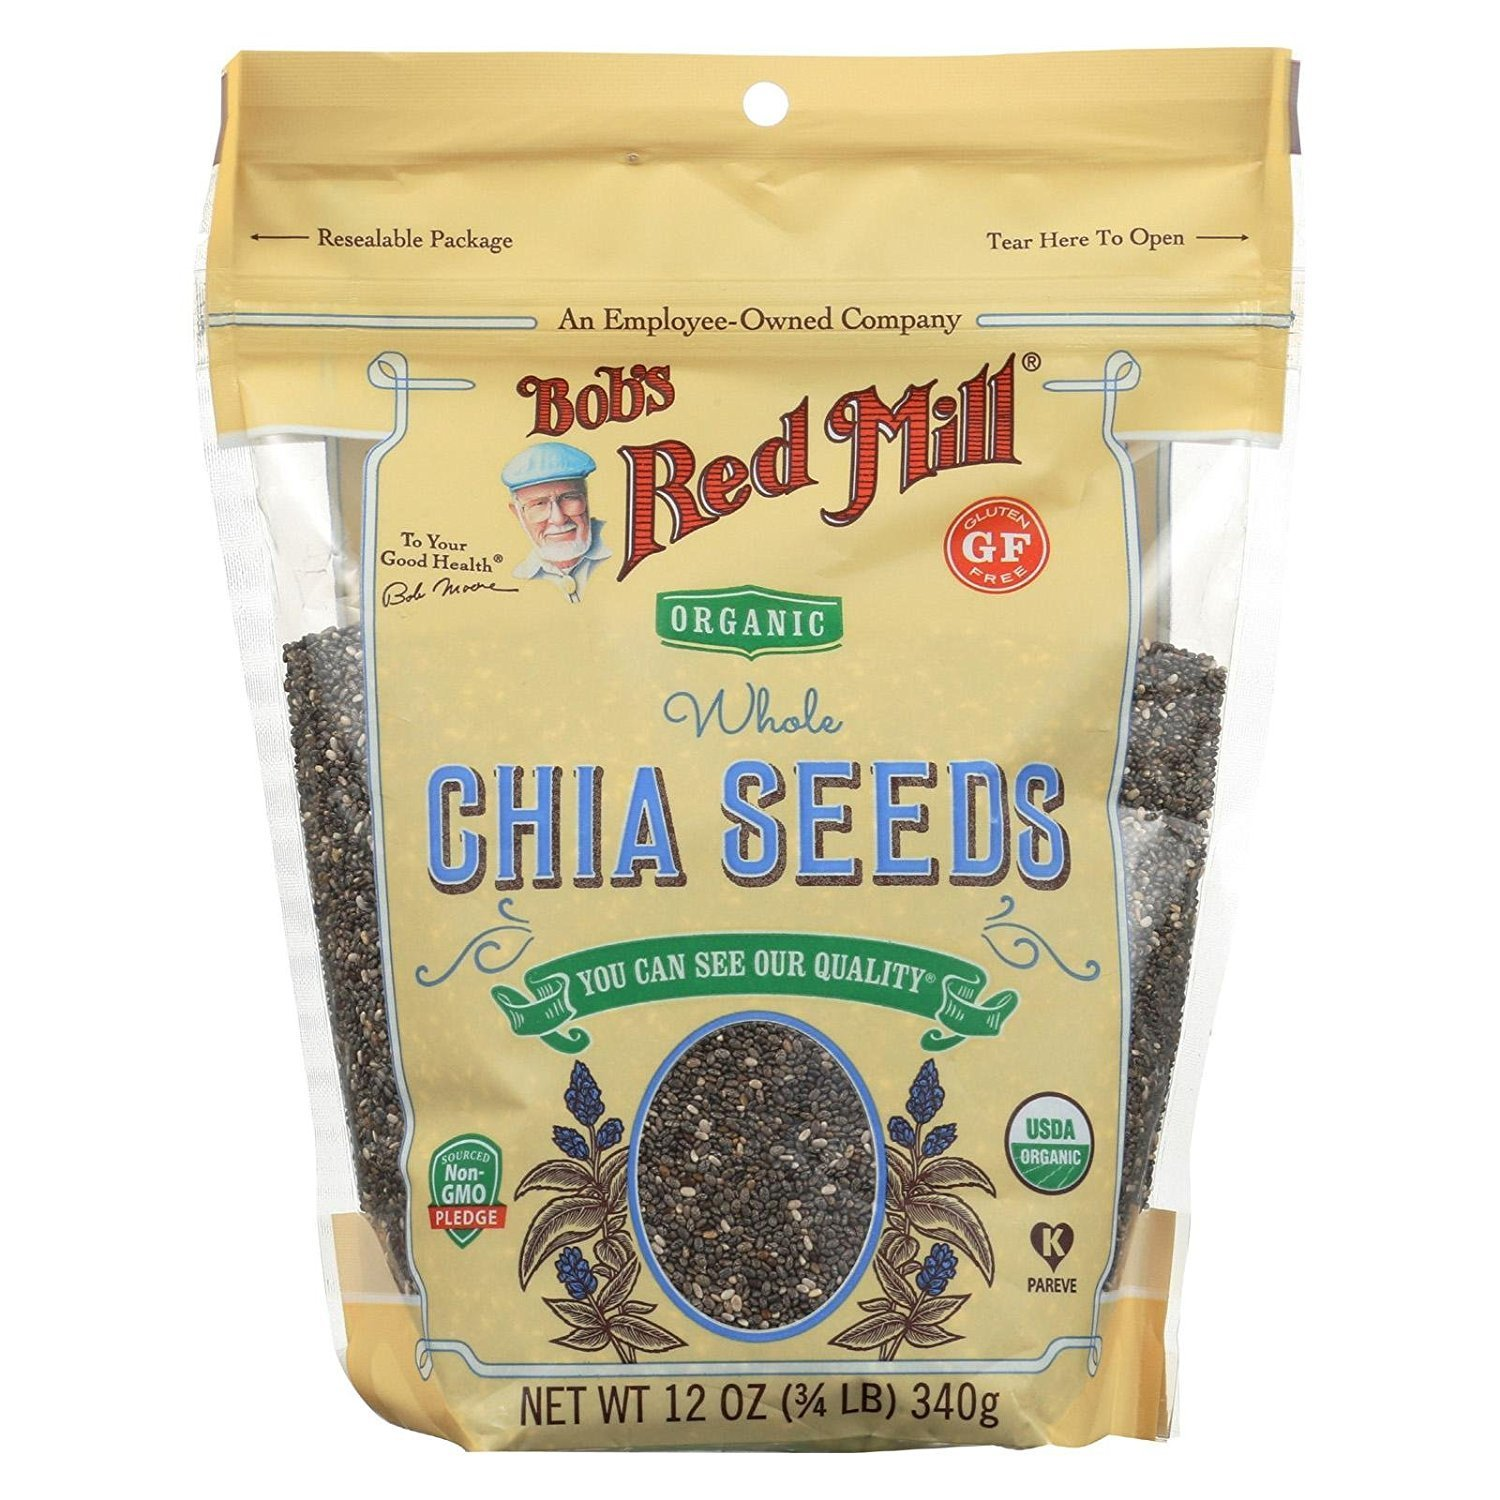 chia-seeds-bobs-red-mill-6-pack